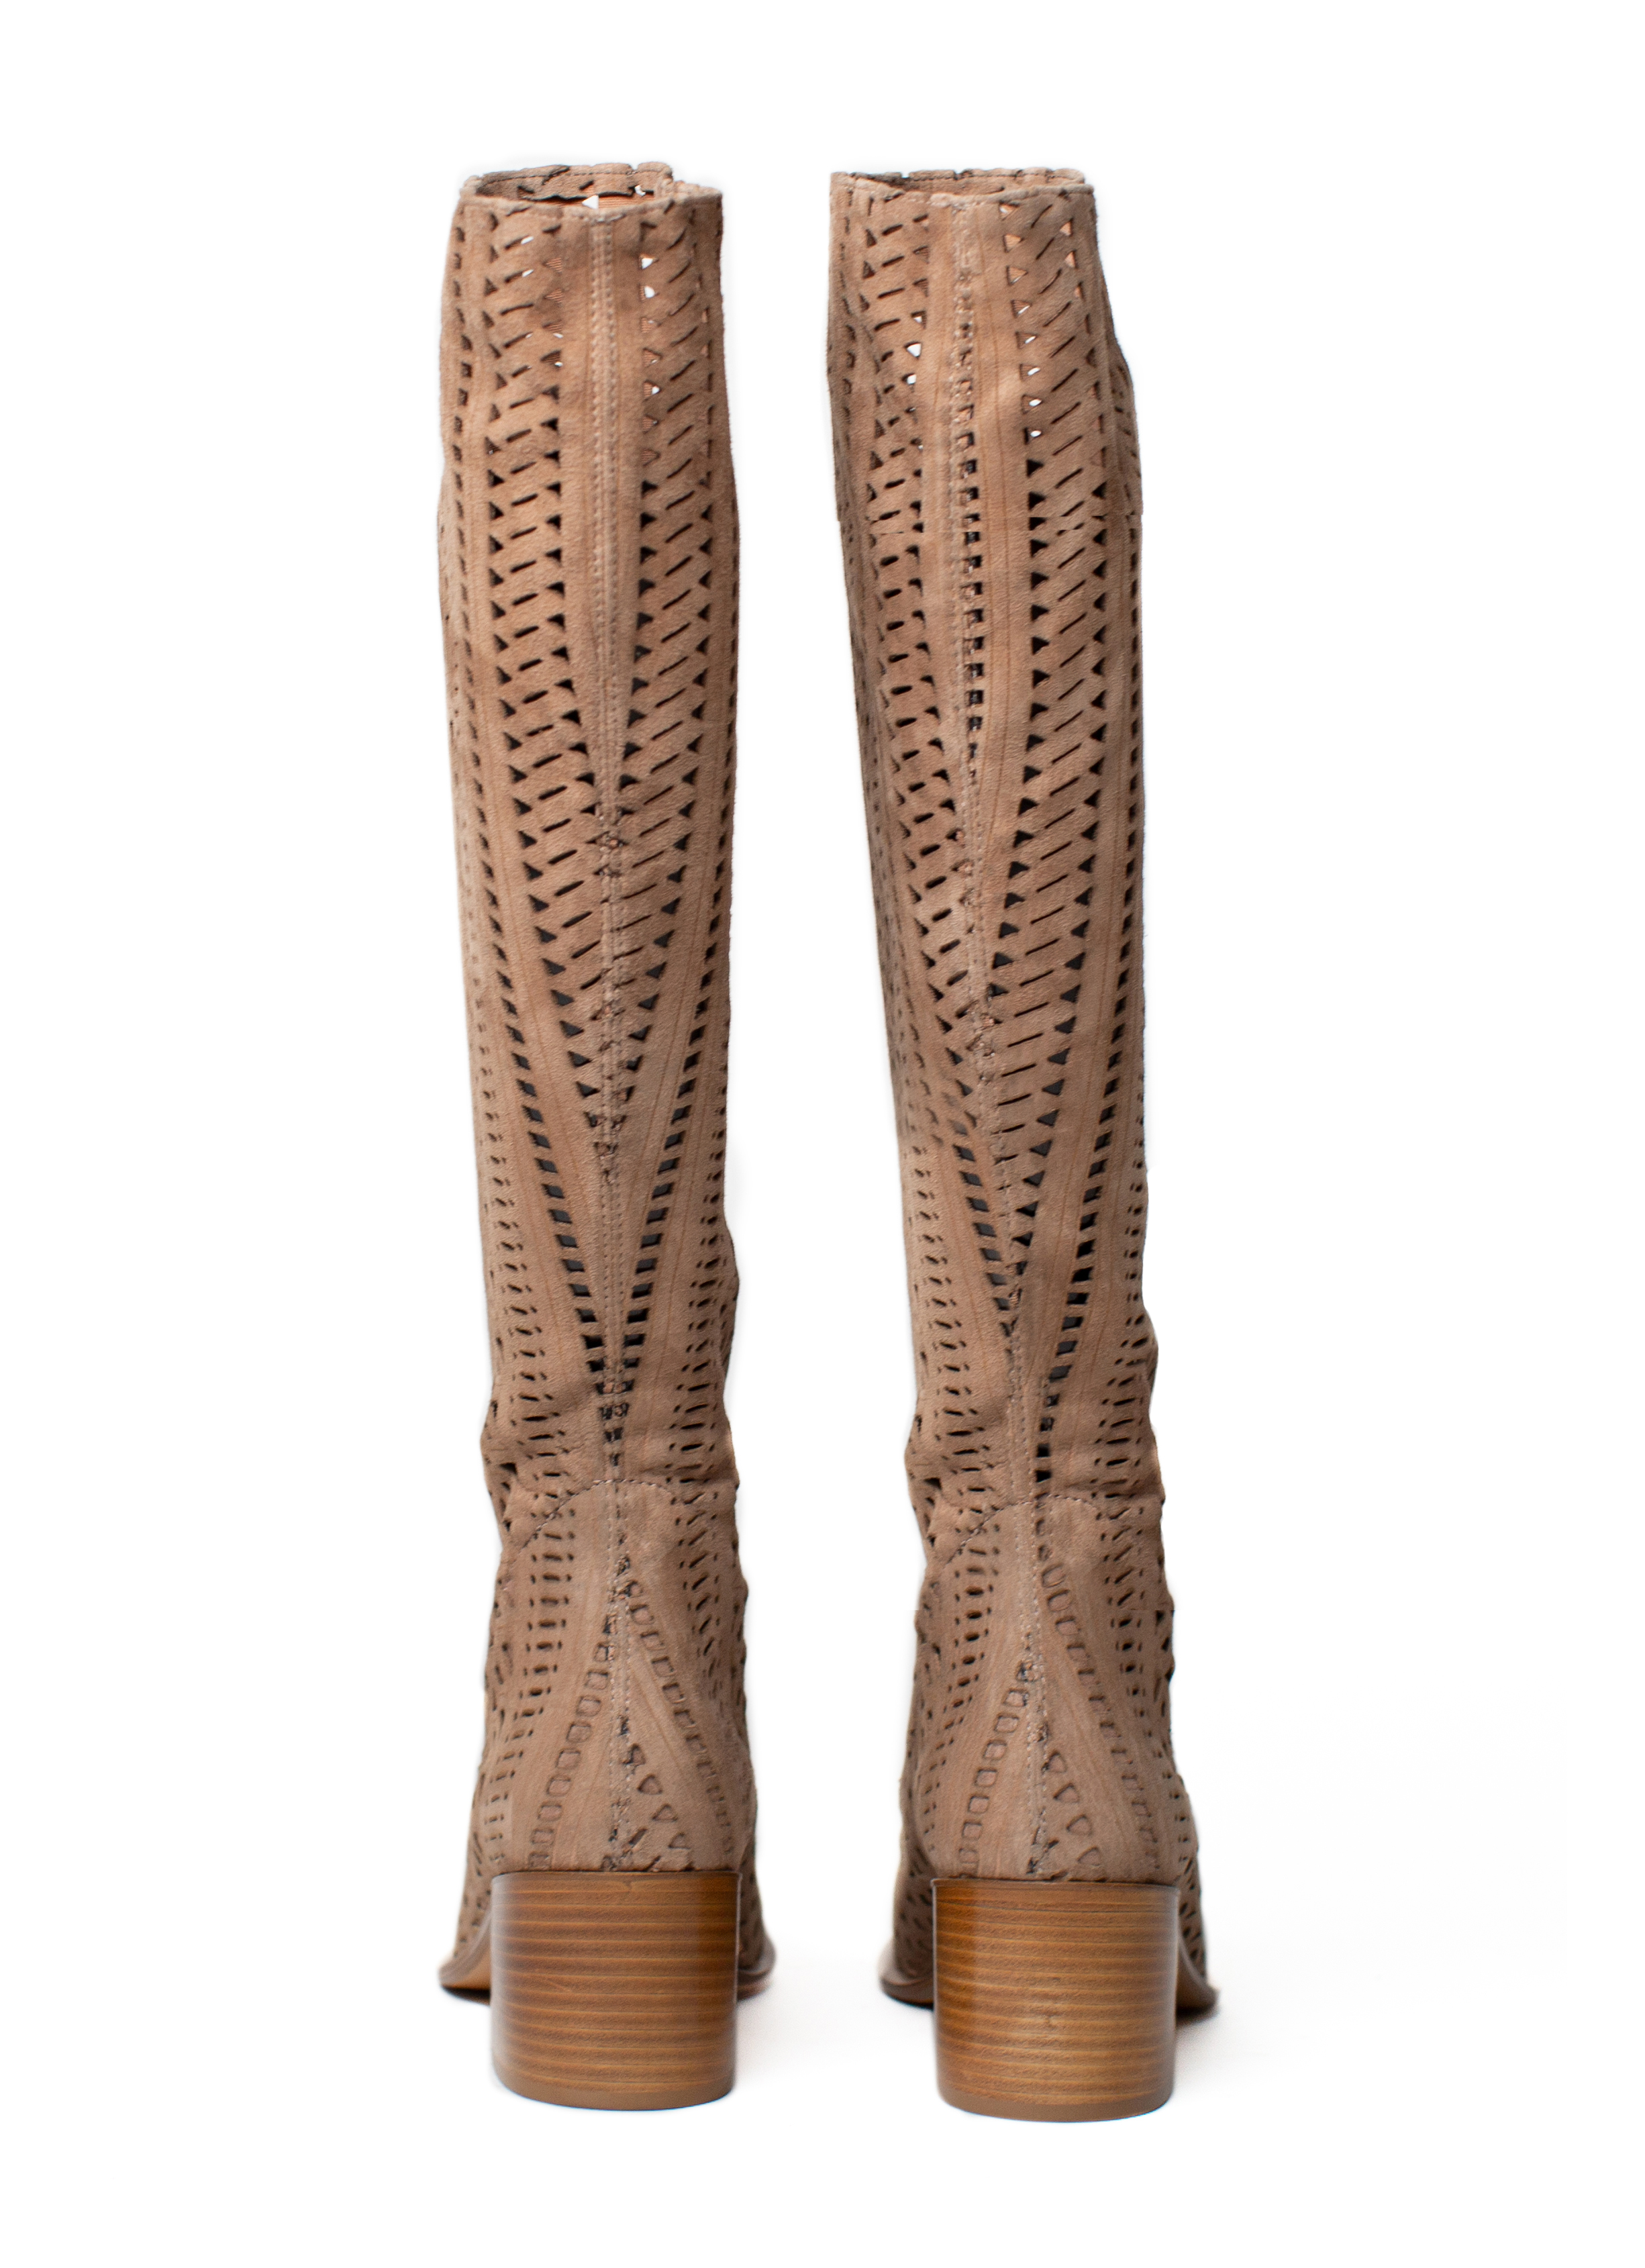 Sculptural Lasercut Suede Boots style details These light beige boots are a versatile wardrobe staple imbued with timeless appeal. Crafted in Italy from our signature smooth and stretchy laser-cut leather, they're cut to a knee-high silhouette that slouch